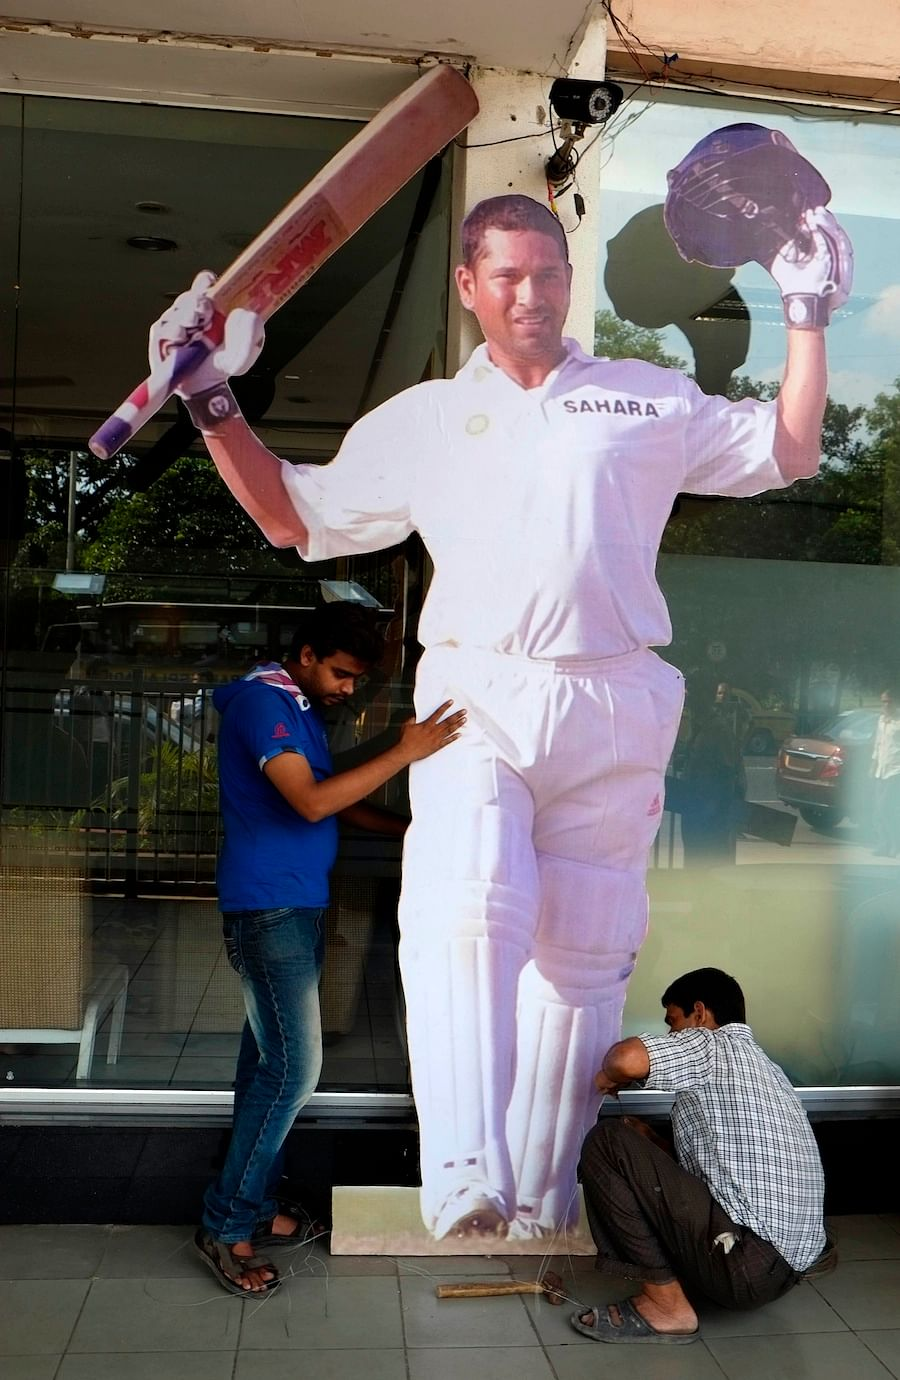 Kolkata hotel names menu after Sachin Tendulkar